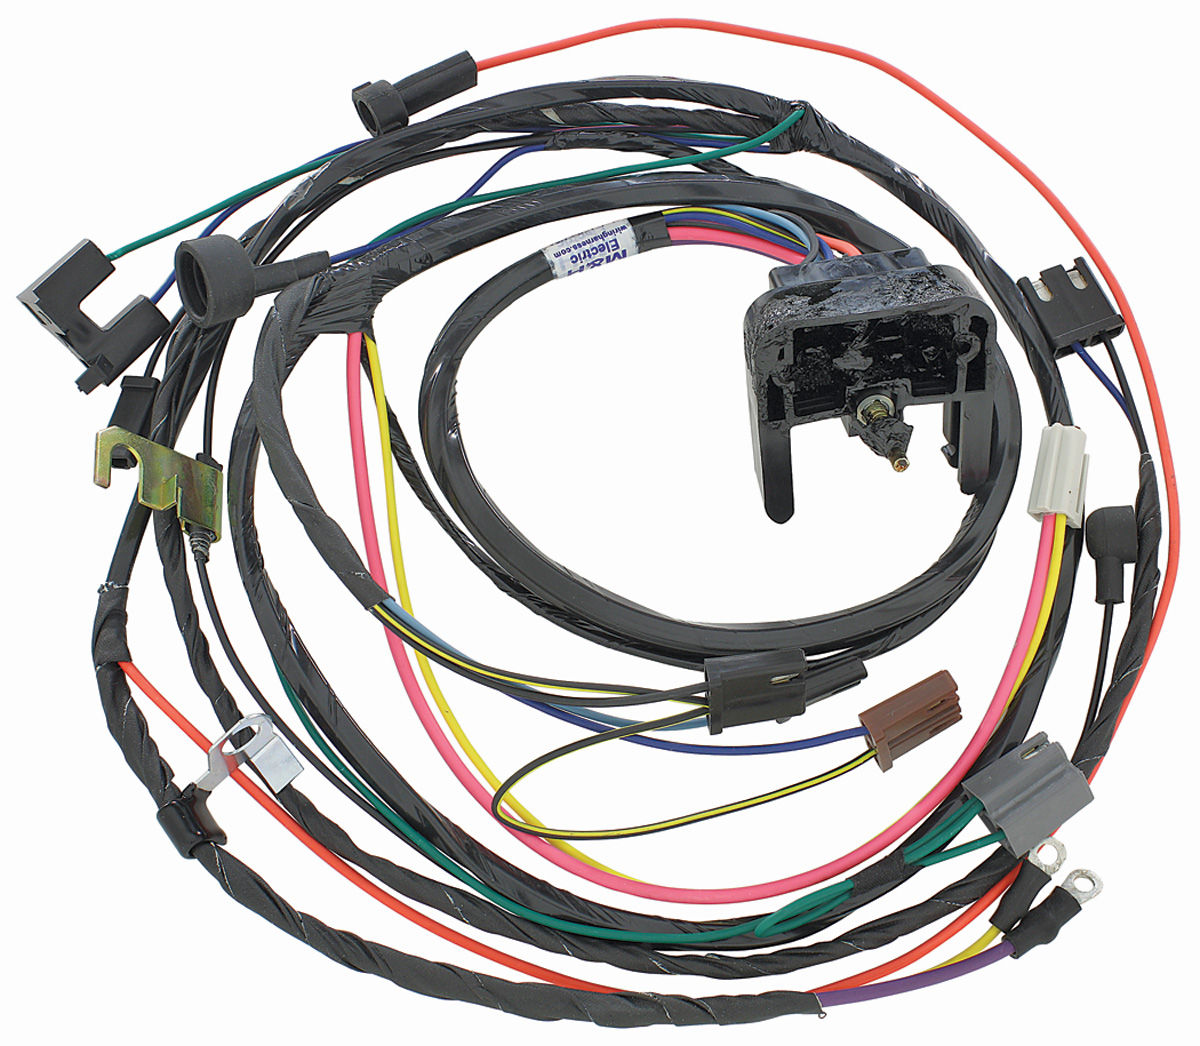 1972 El Camino Wiring Diagram Hei Manual Guide 79 Wire M H 1970 Engine Harness 396 454 W Trans Opgi Com Rh Ac 1971